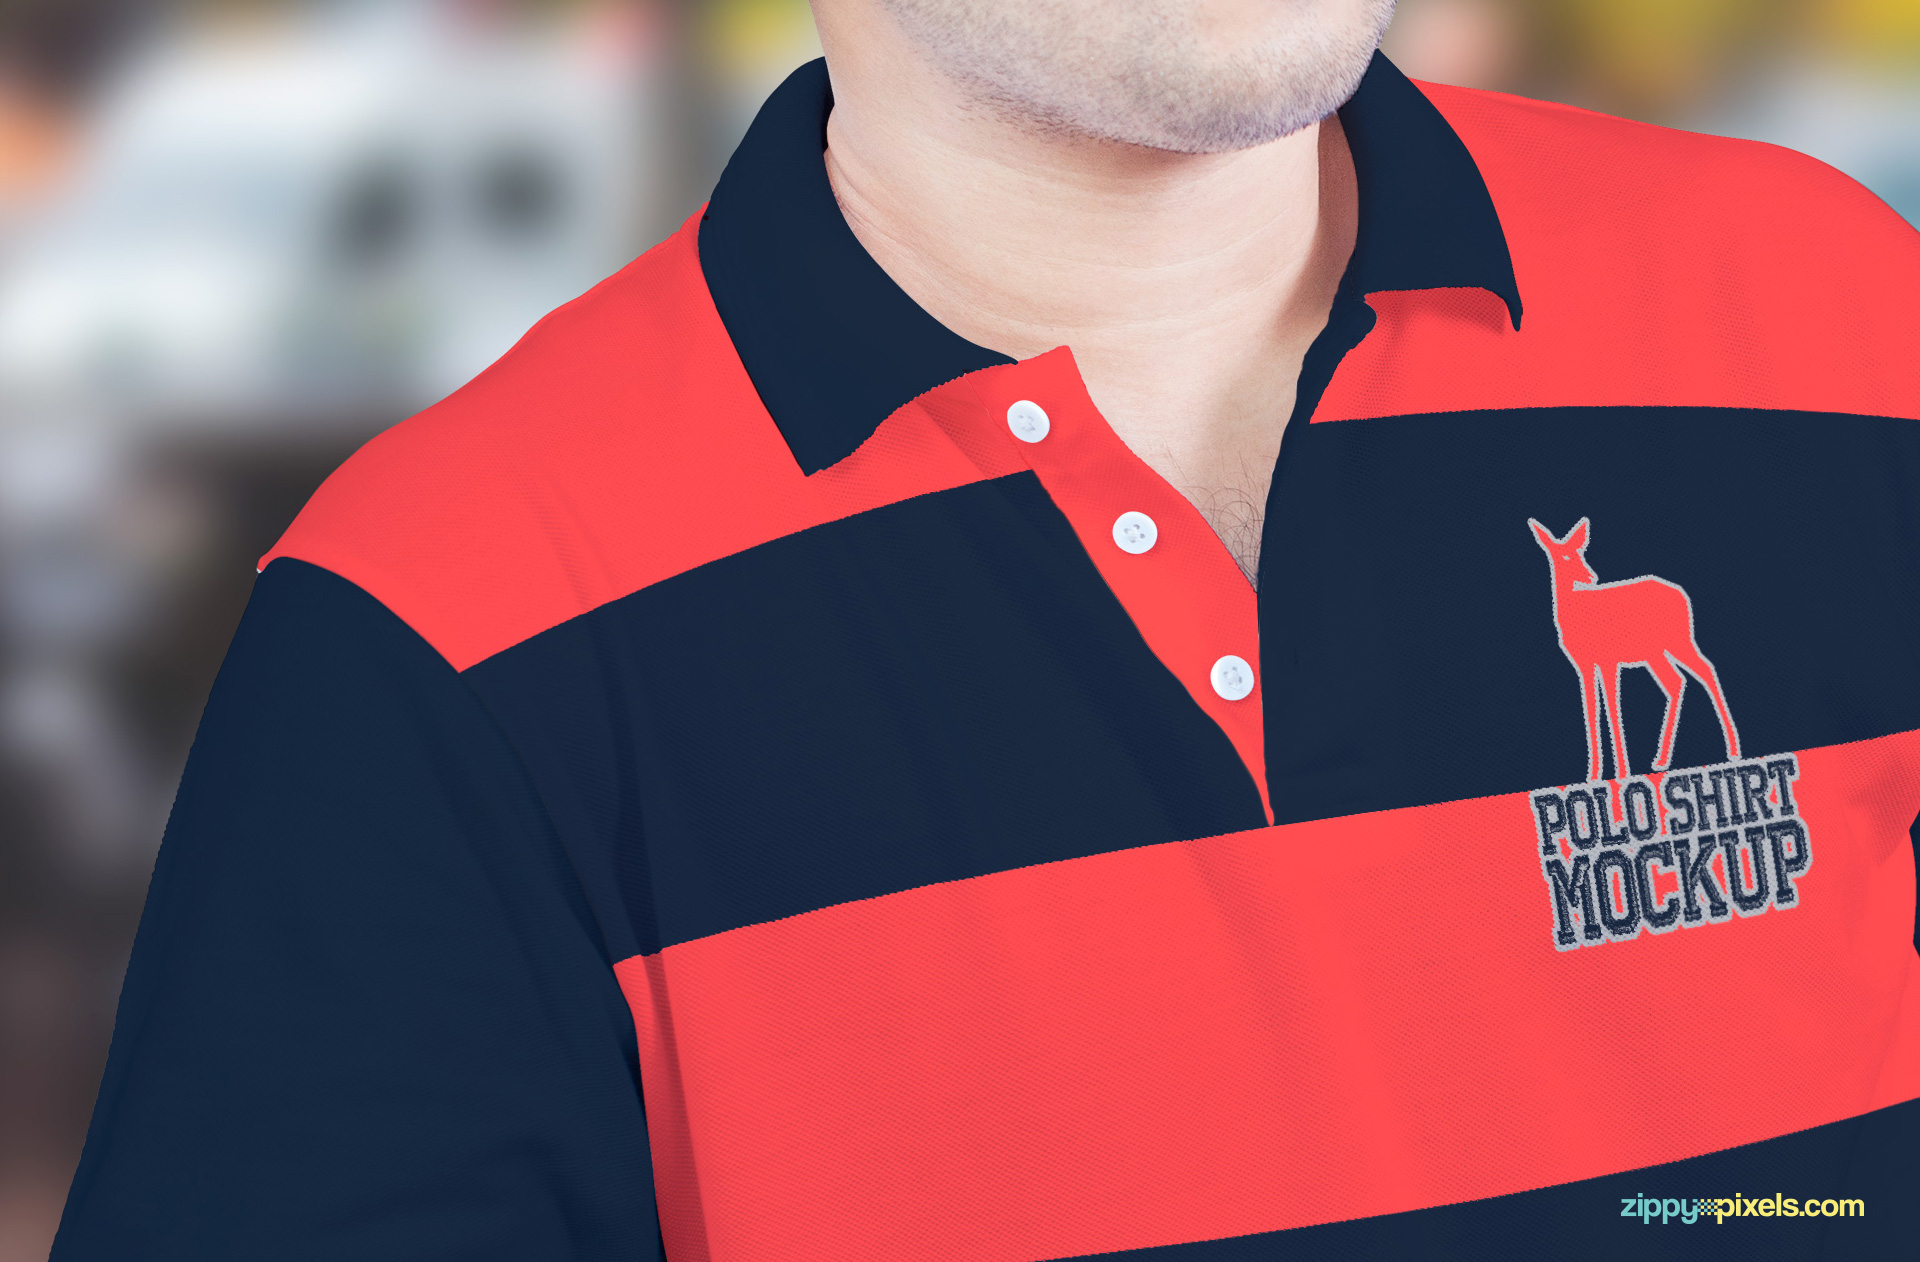 Free to use polo shirt mockup with editable features